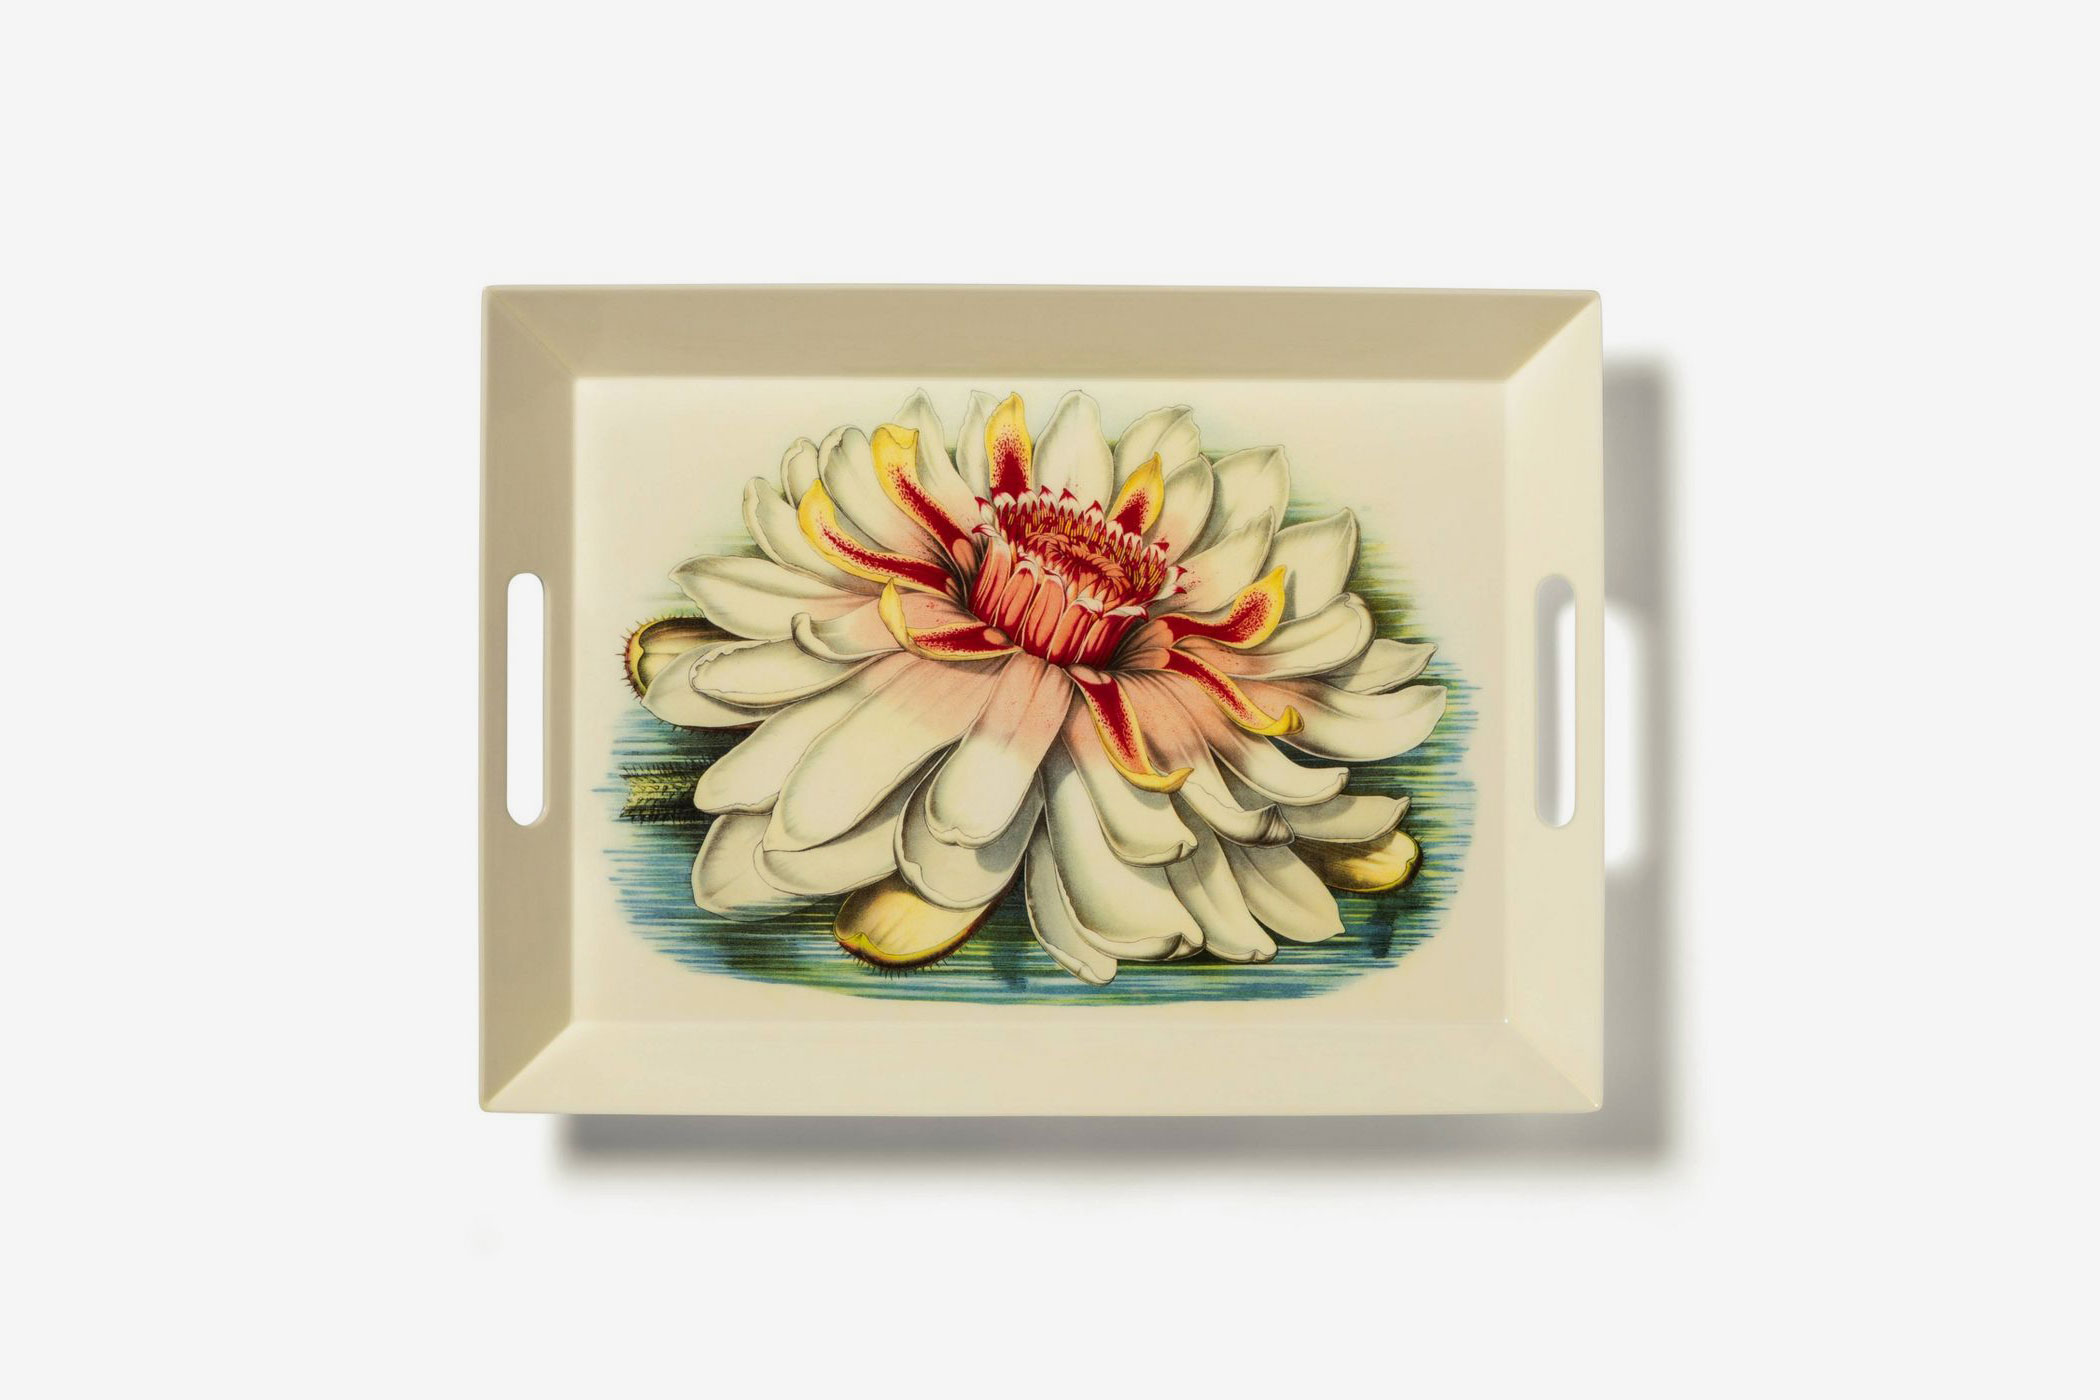 John Derian for Target Melamine Serving Tray with Handles Floral Print